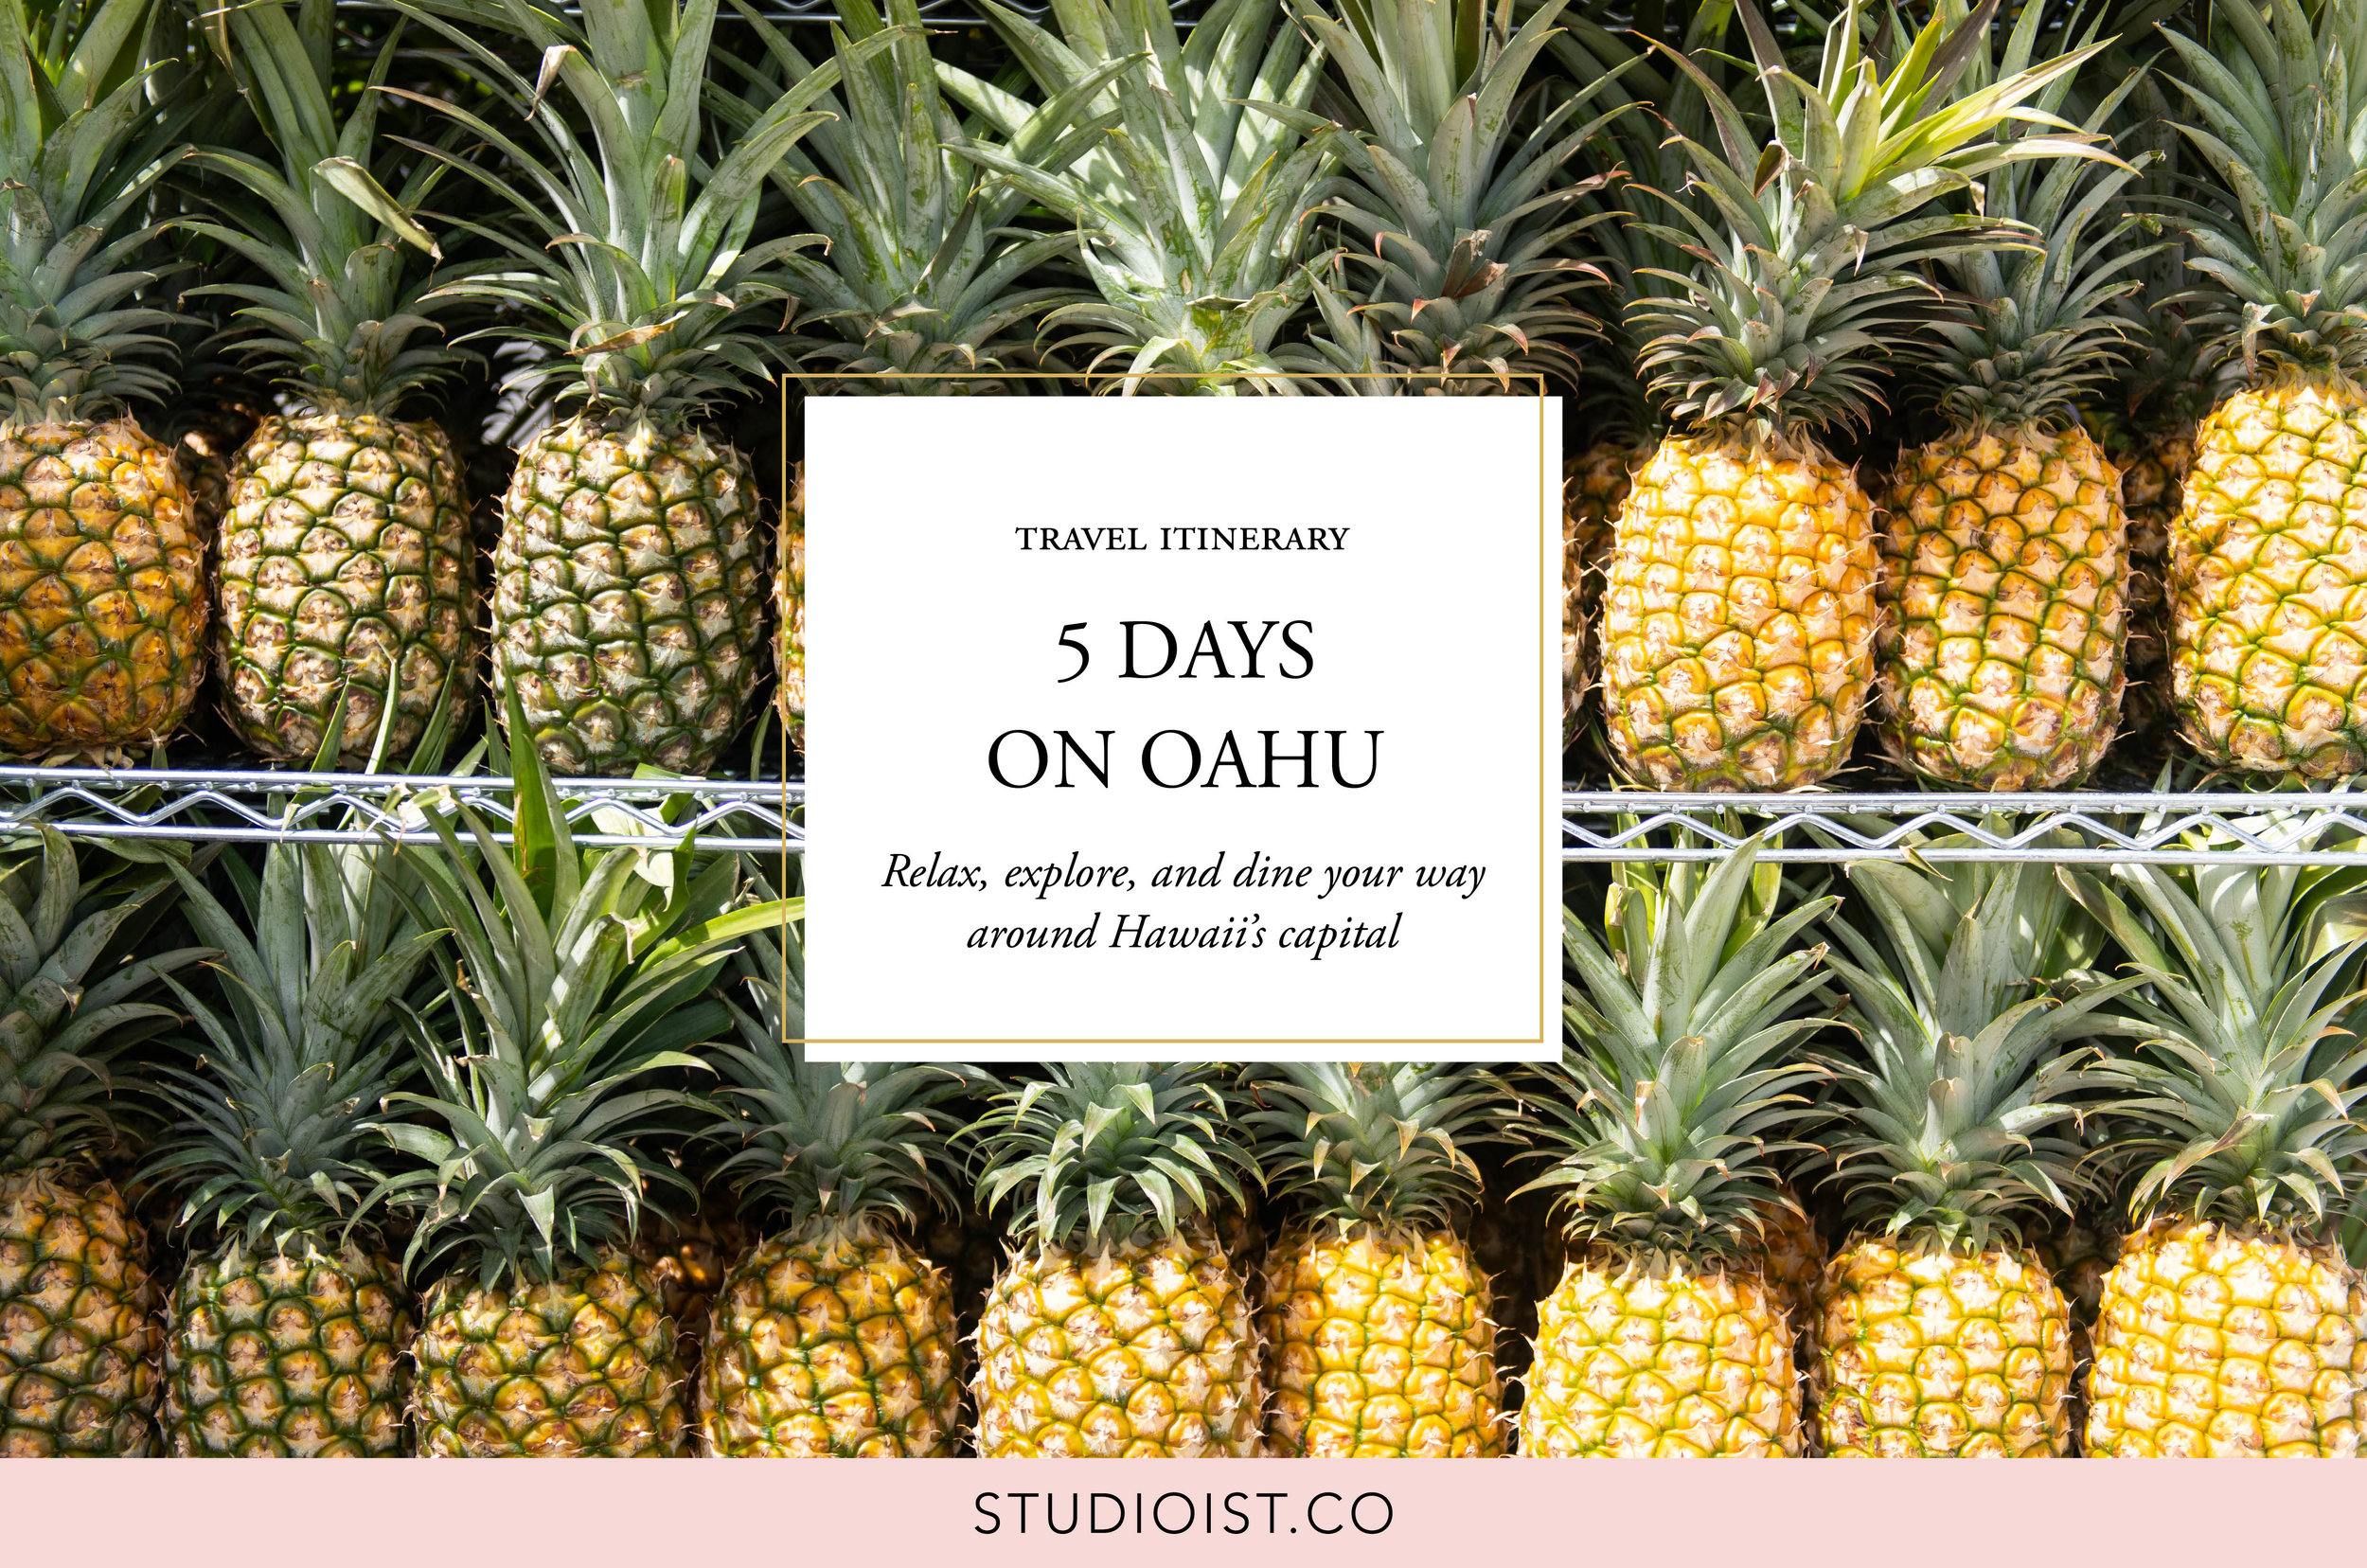 Studioist_Travel Cover Photos_Oahu Itinerary.jpg